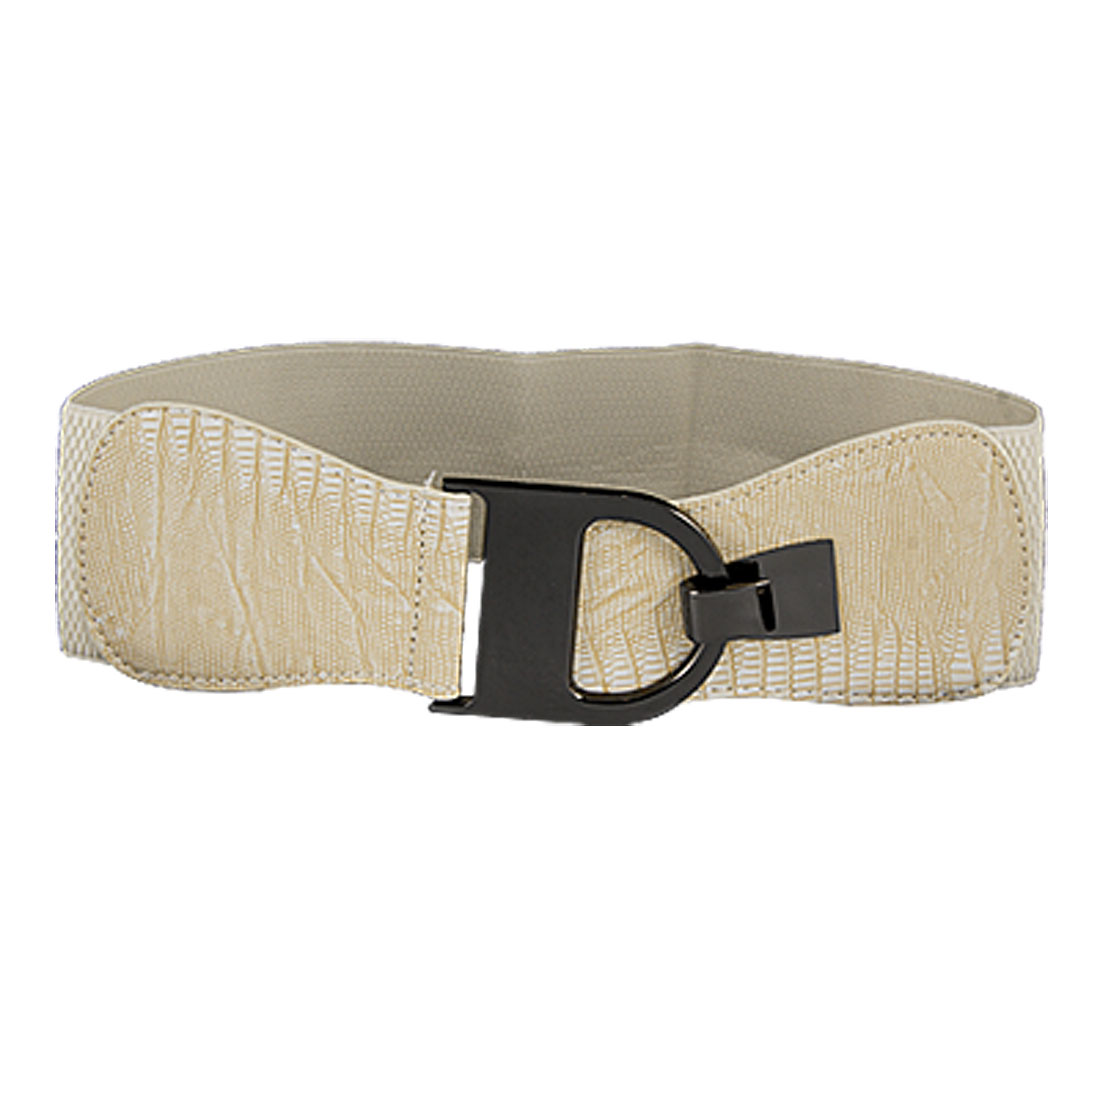 Black Interlocking Buckle White Stretchy Waist Belt for Lady